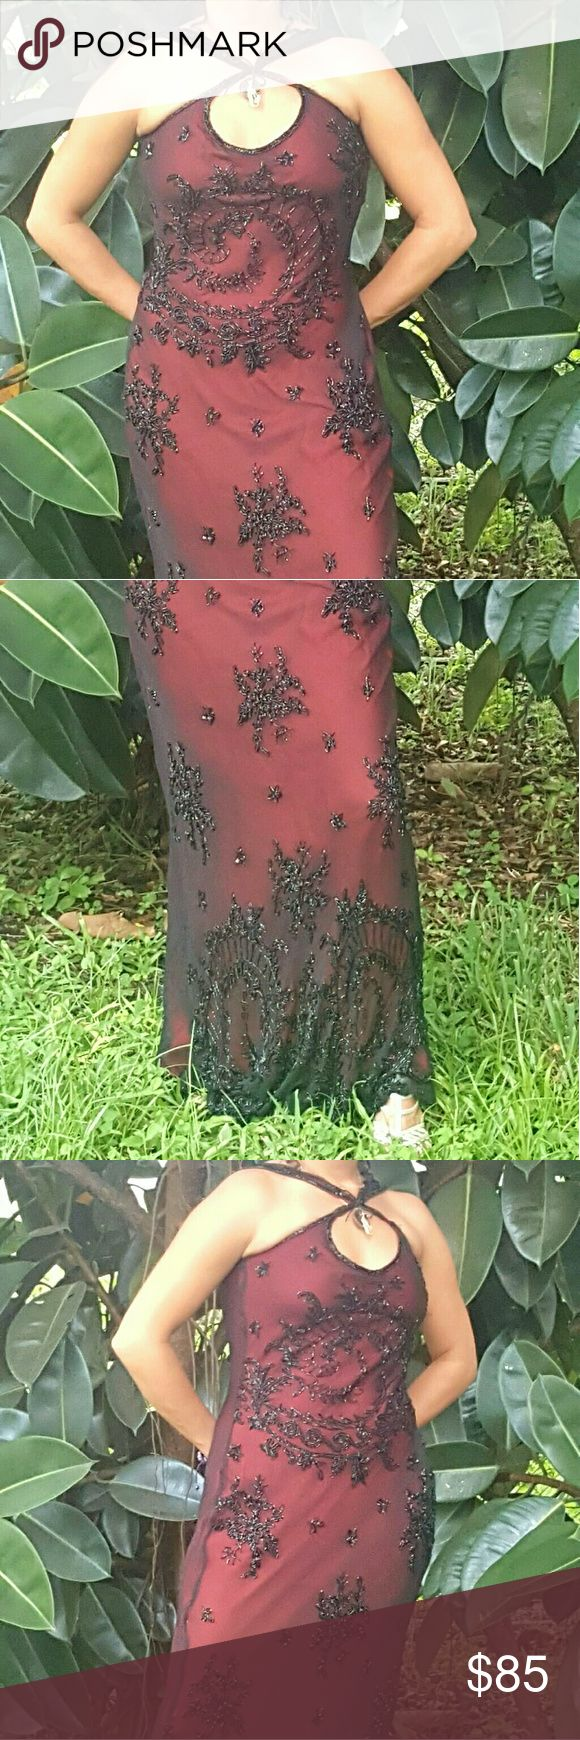 Dress Gorgeous black and red sequins evening gown... You can wear it to a wedding, to a fancy dinner, to a vampire ball theme, a 1920's theme,  Gatsby theme or prom... Dress is a size 6 but can fit a 1-8... I am a little shorter in the shoulder area so I tie or pin the straps in the front as seen in picture... Original straps made for a taller person and with the right length to accompany a taller or shorter person... Papell Boutique Dresses Prom